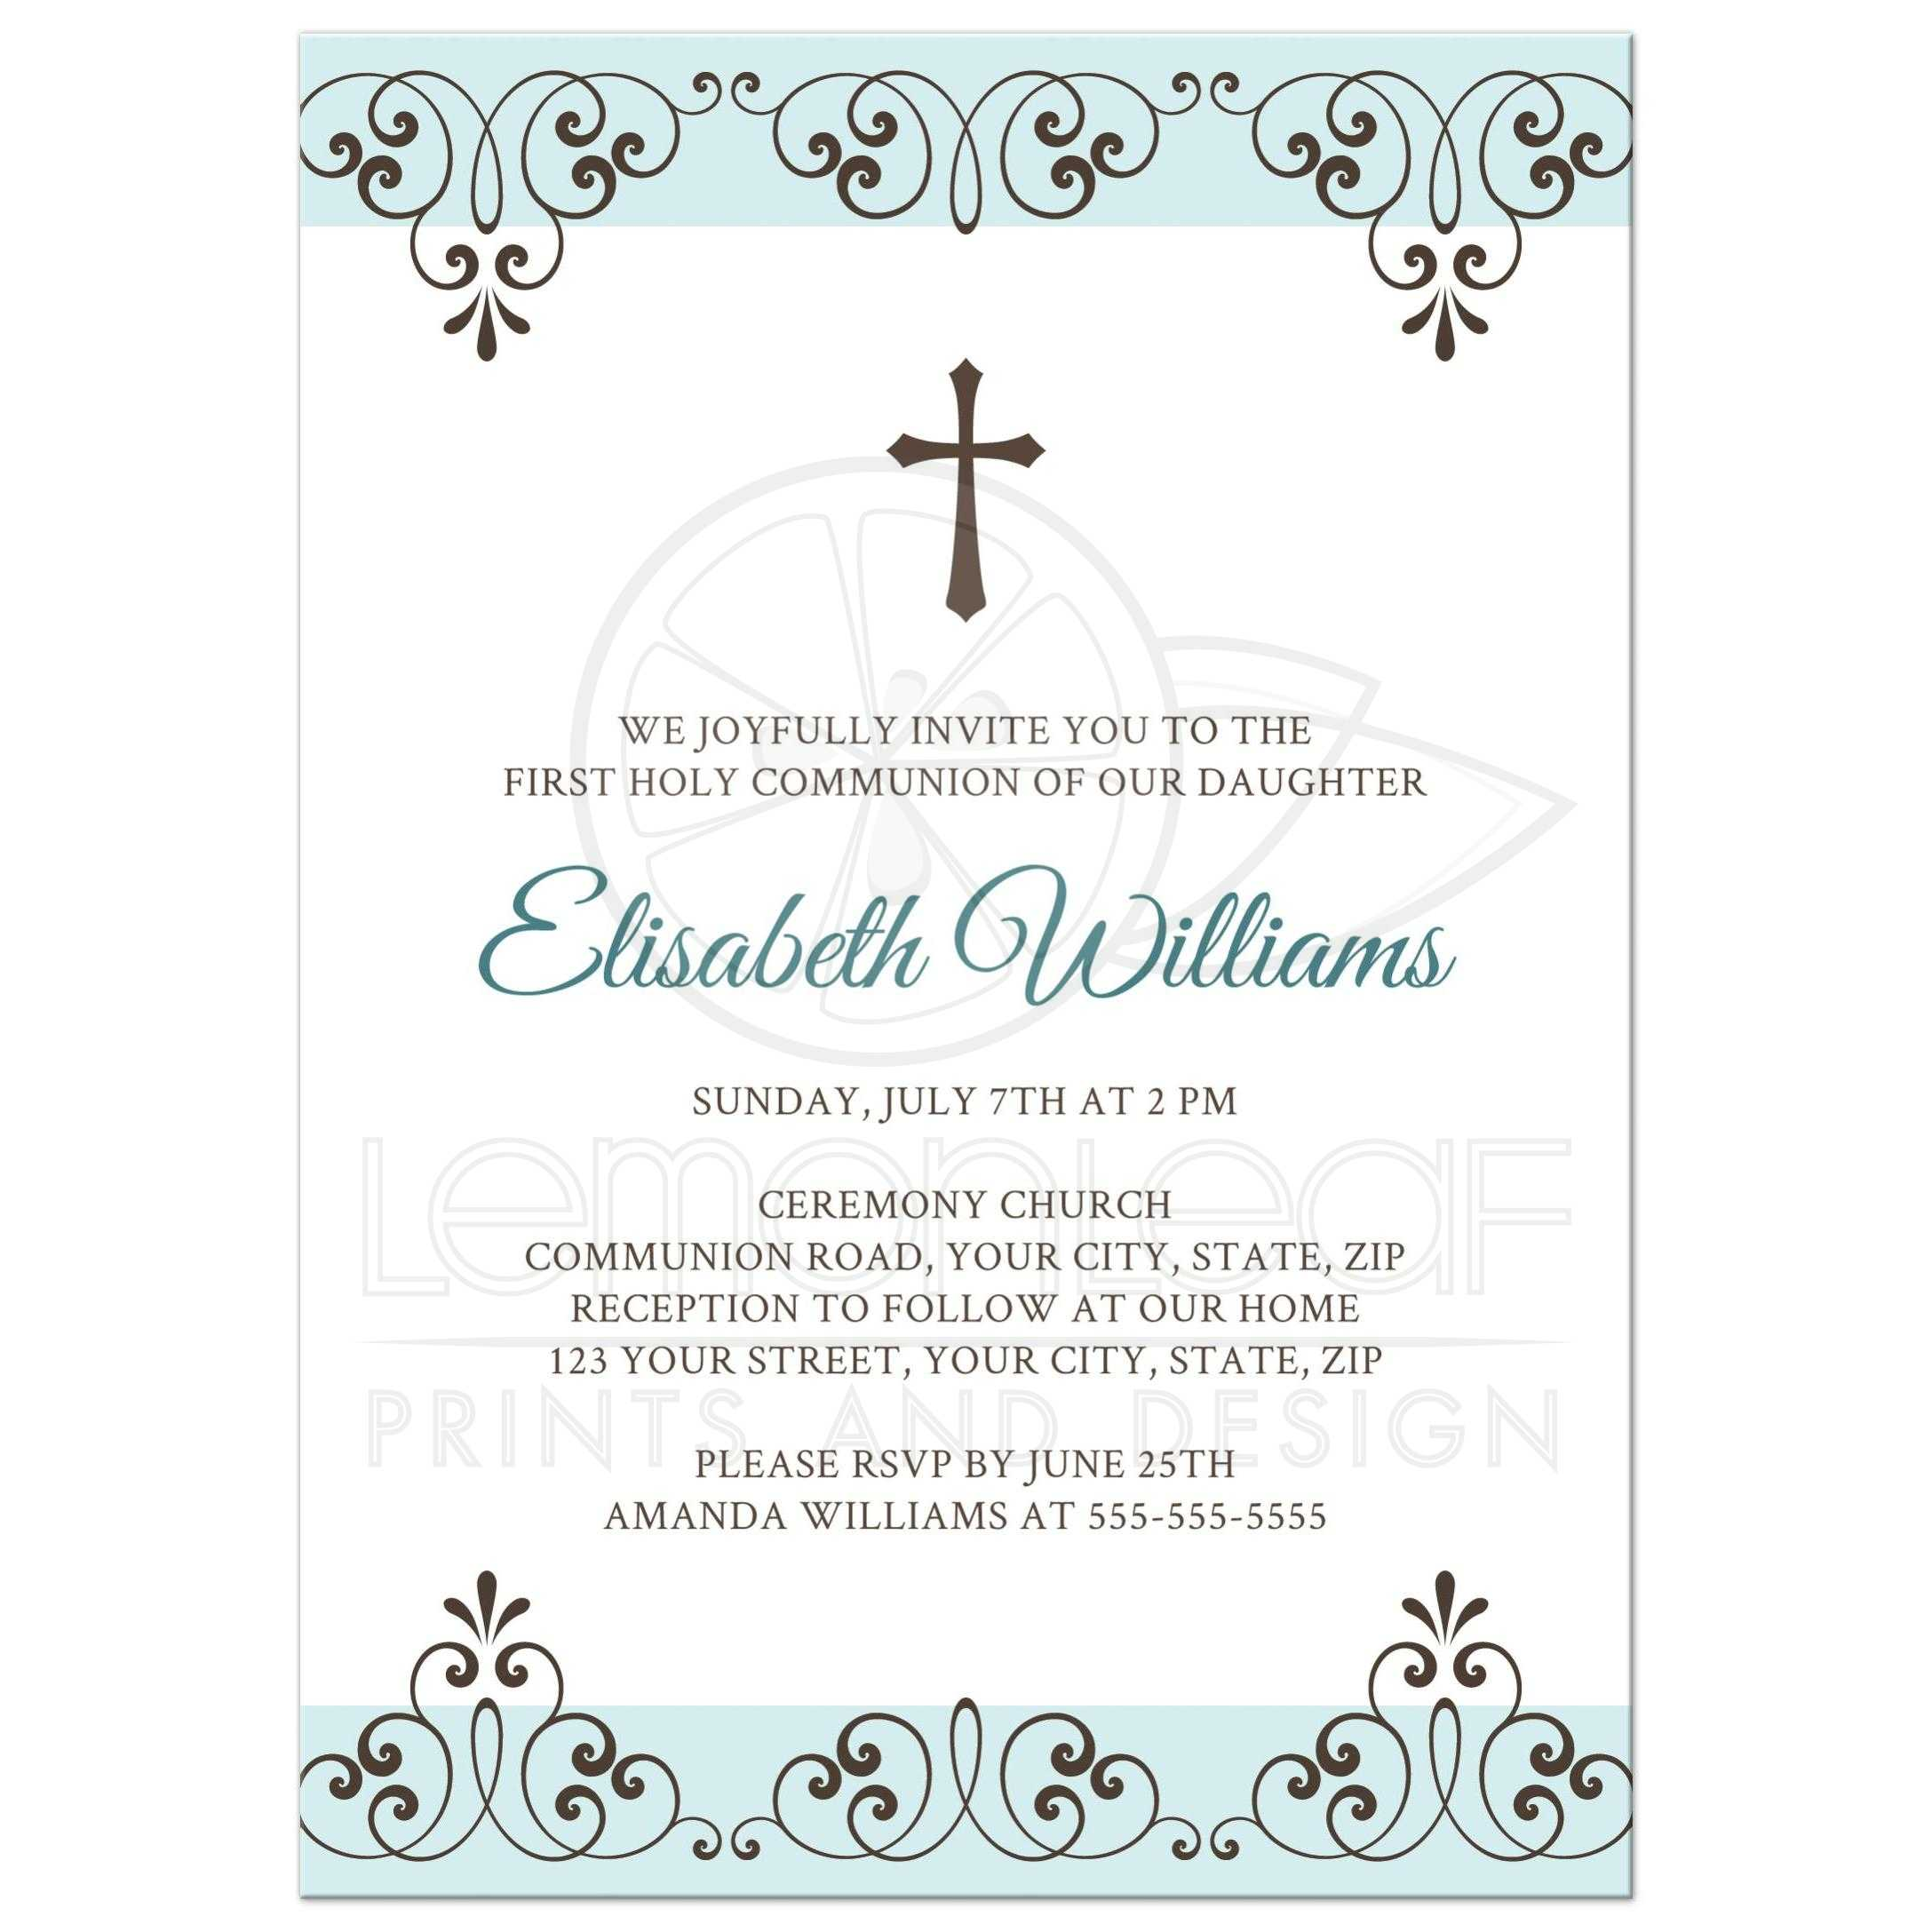 Pale, muted blue and brown First Holy Communion invite with ornate borders